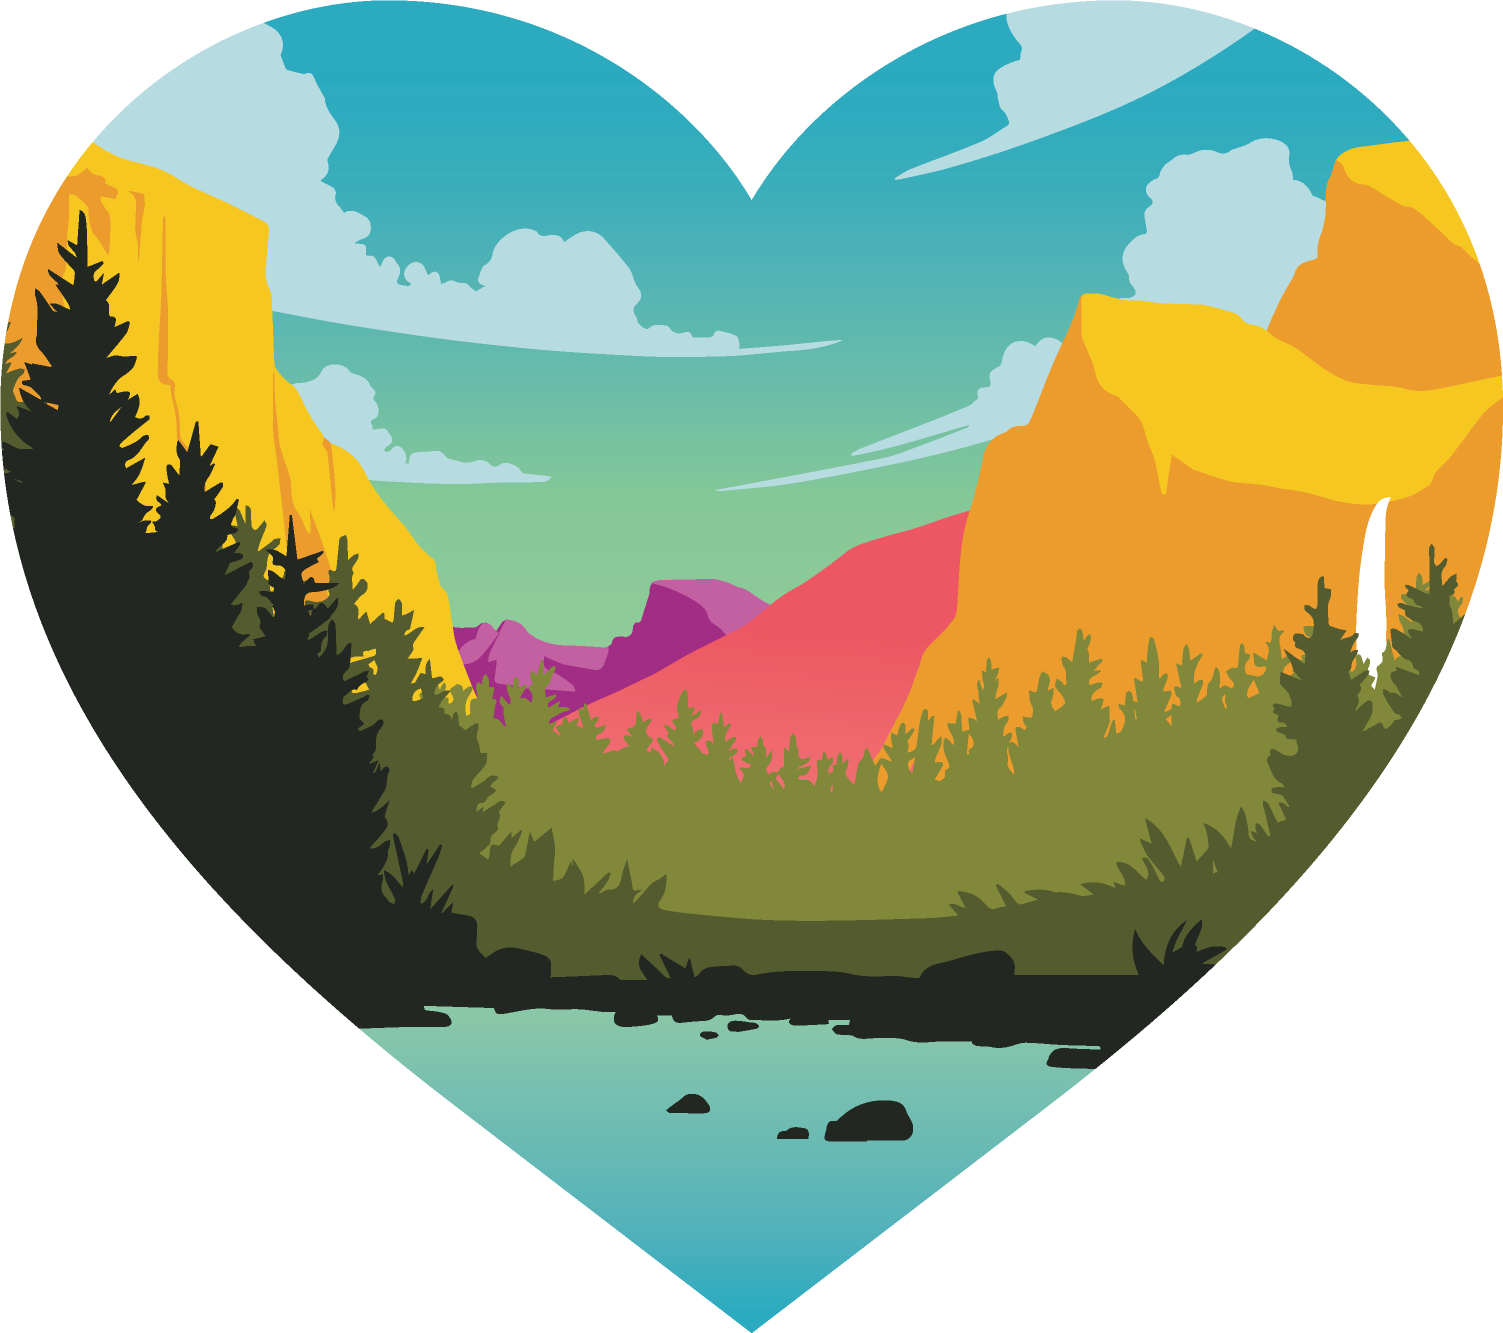 Find your park national. Environment clipart love environment